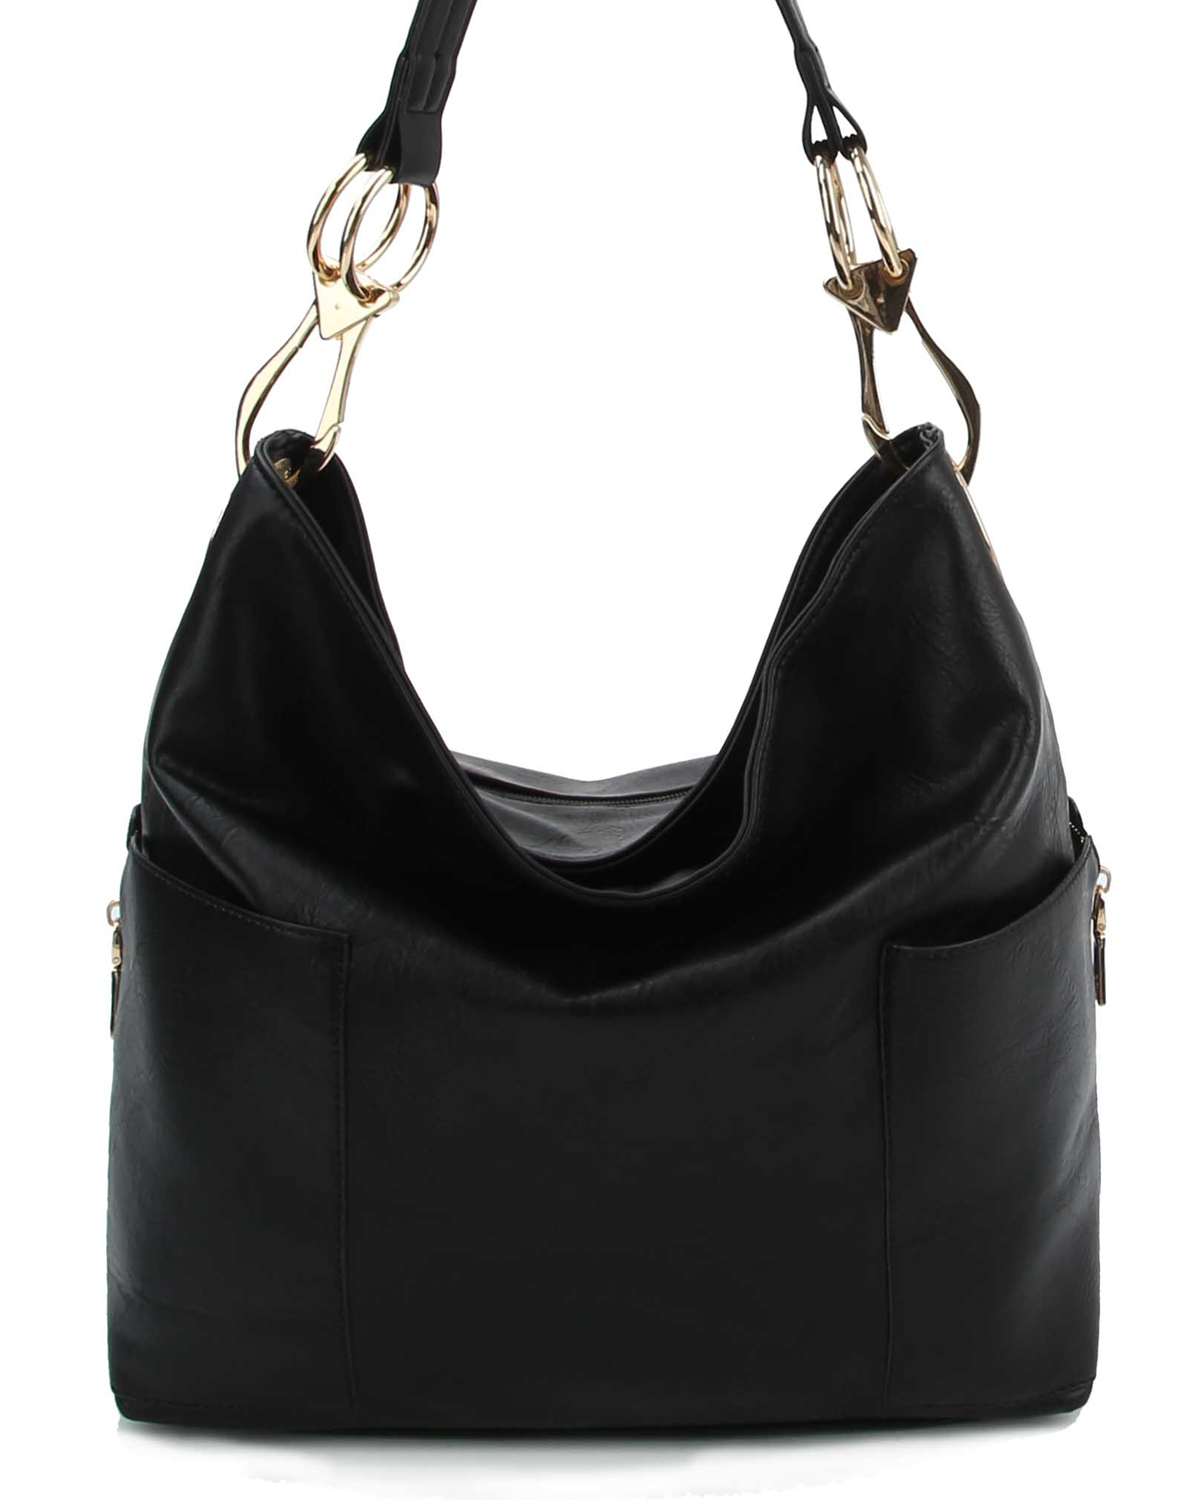 LHU073R(BK)-wholesale-handbag-solid-color-pocket-zipper-gold-lobster-claw-clasp-vegan-faux-leather-fashion-hobo(0).jpg